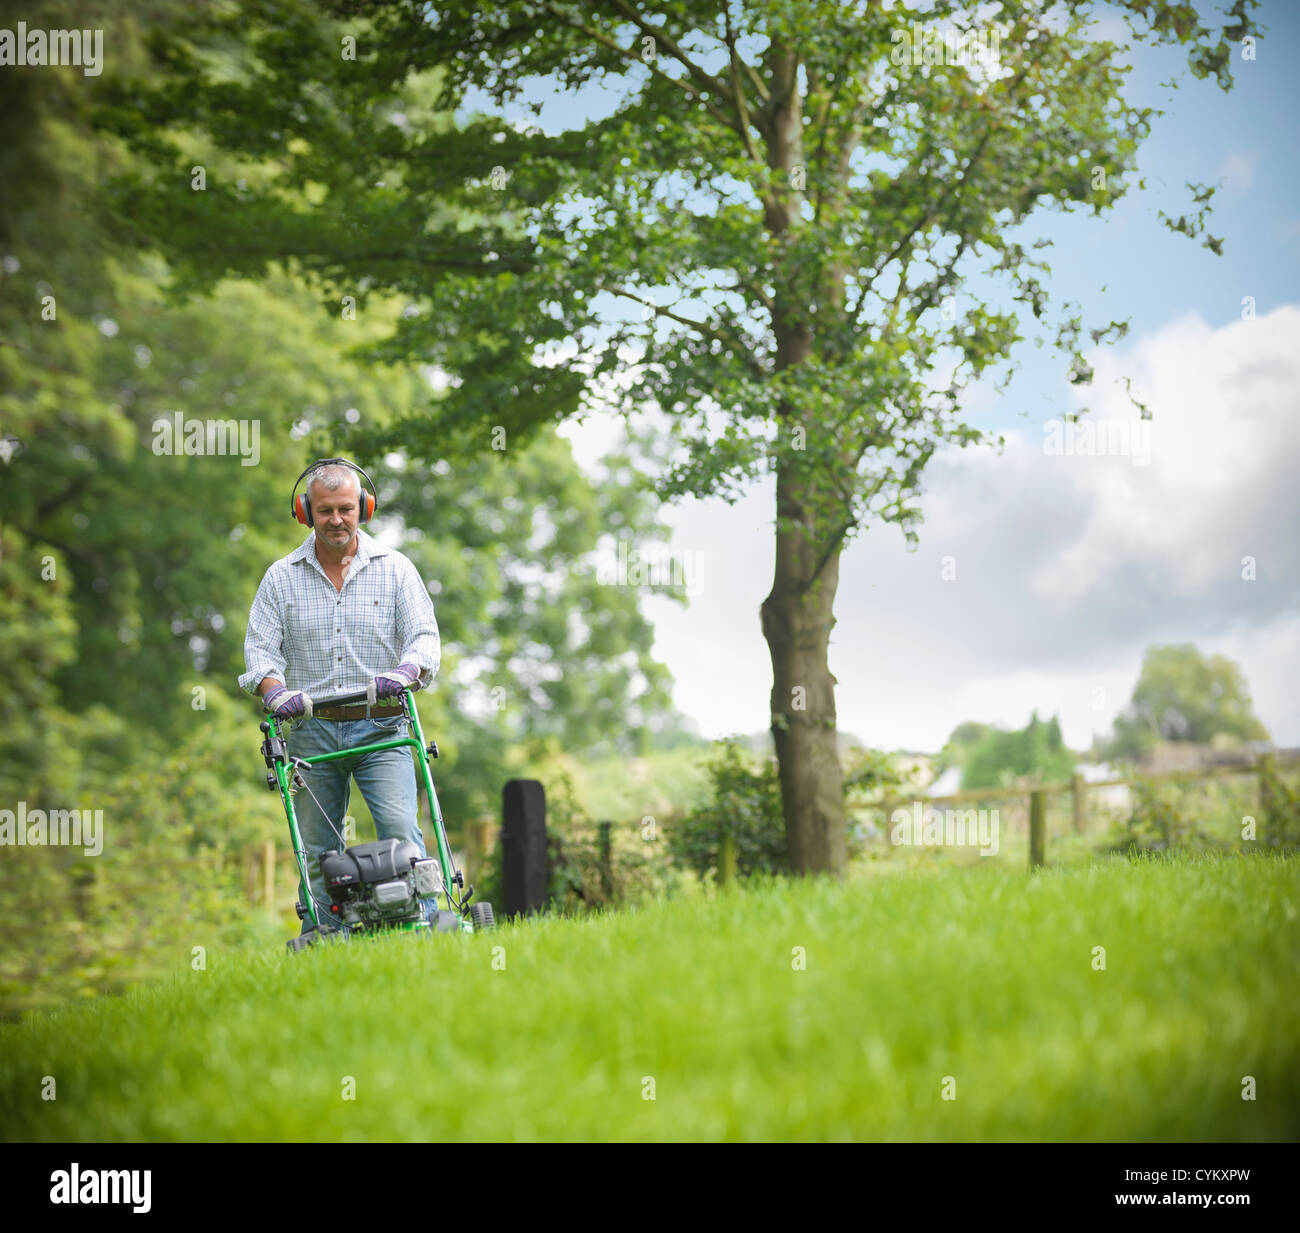 Man wearing headphones and mowing lawn - Stock Image